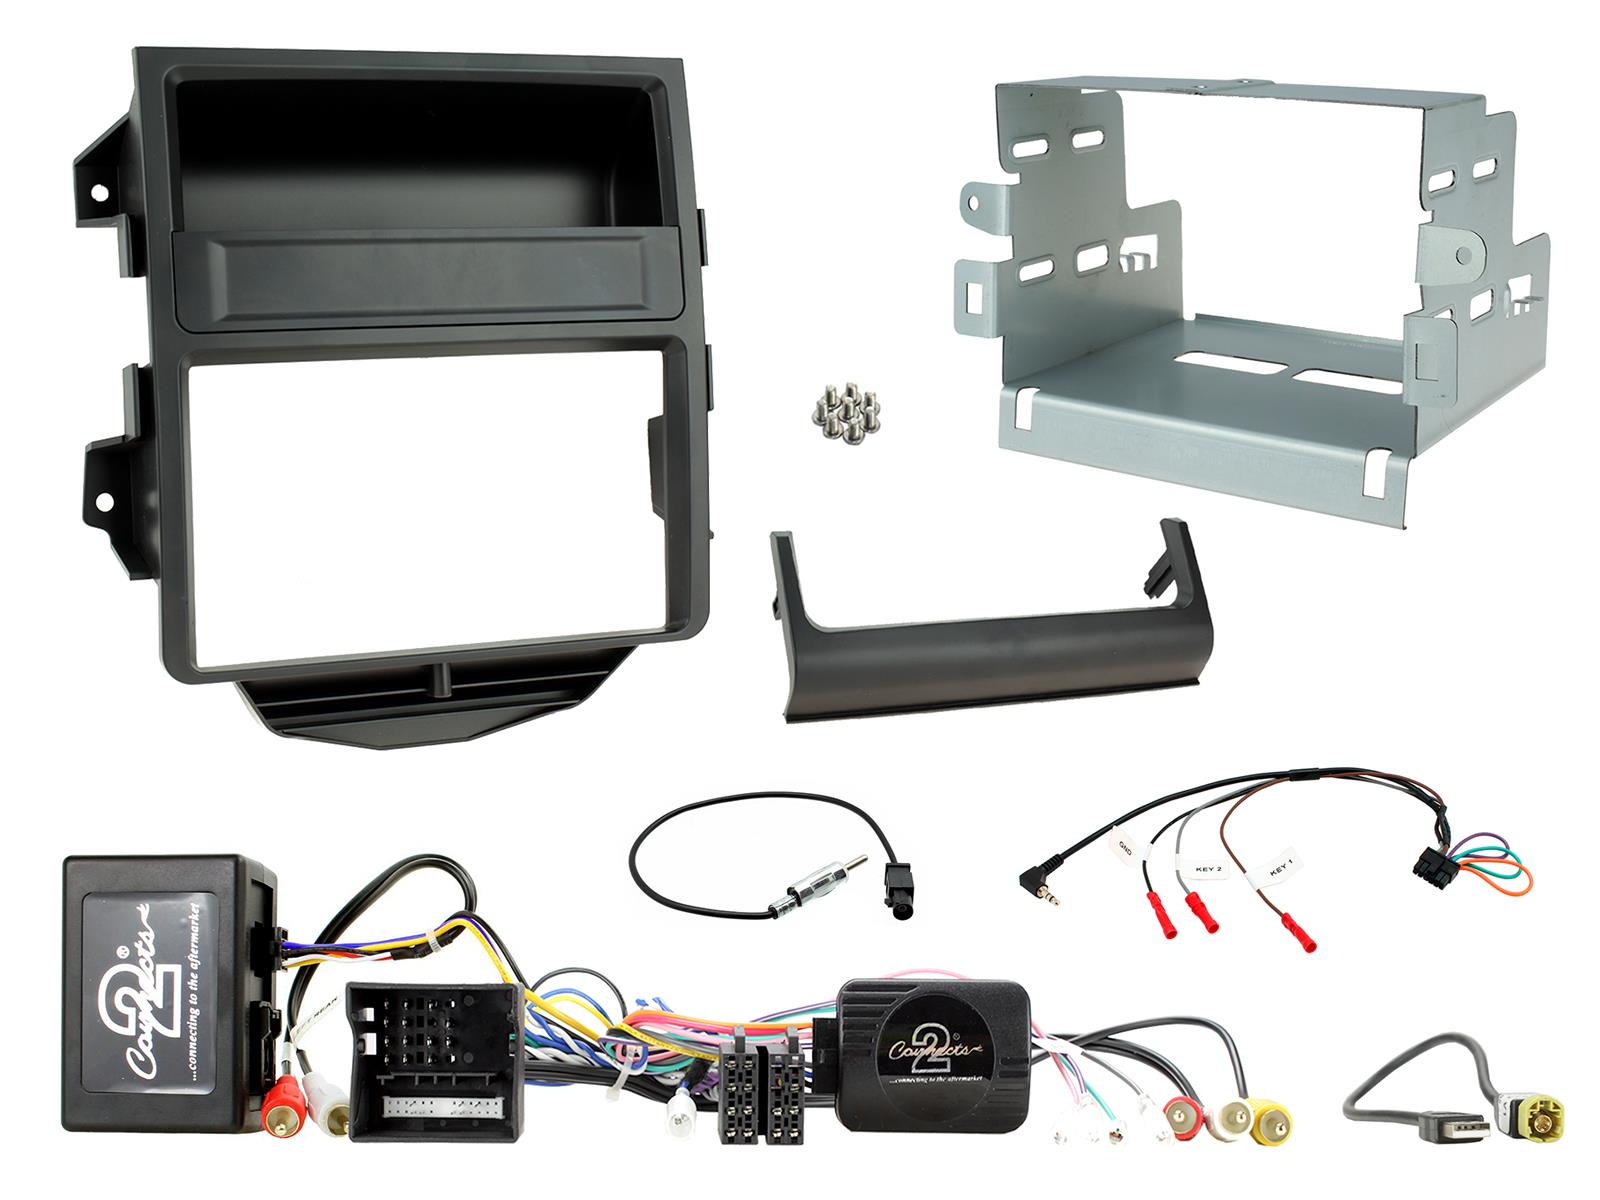 2DIN KIT Porsche Macan 2014-2016 Zwart + Amp Retention